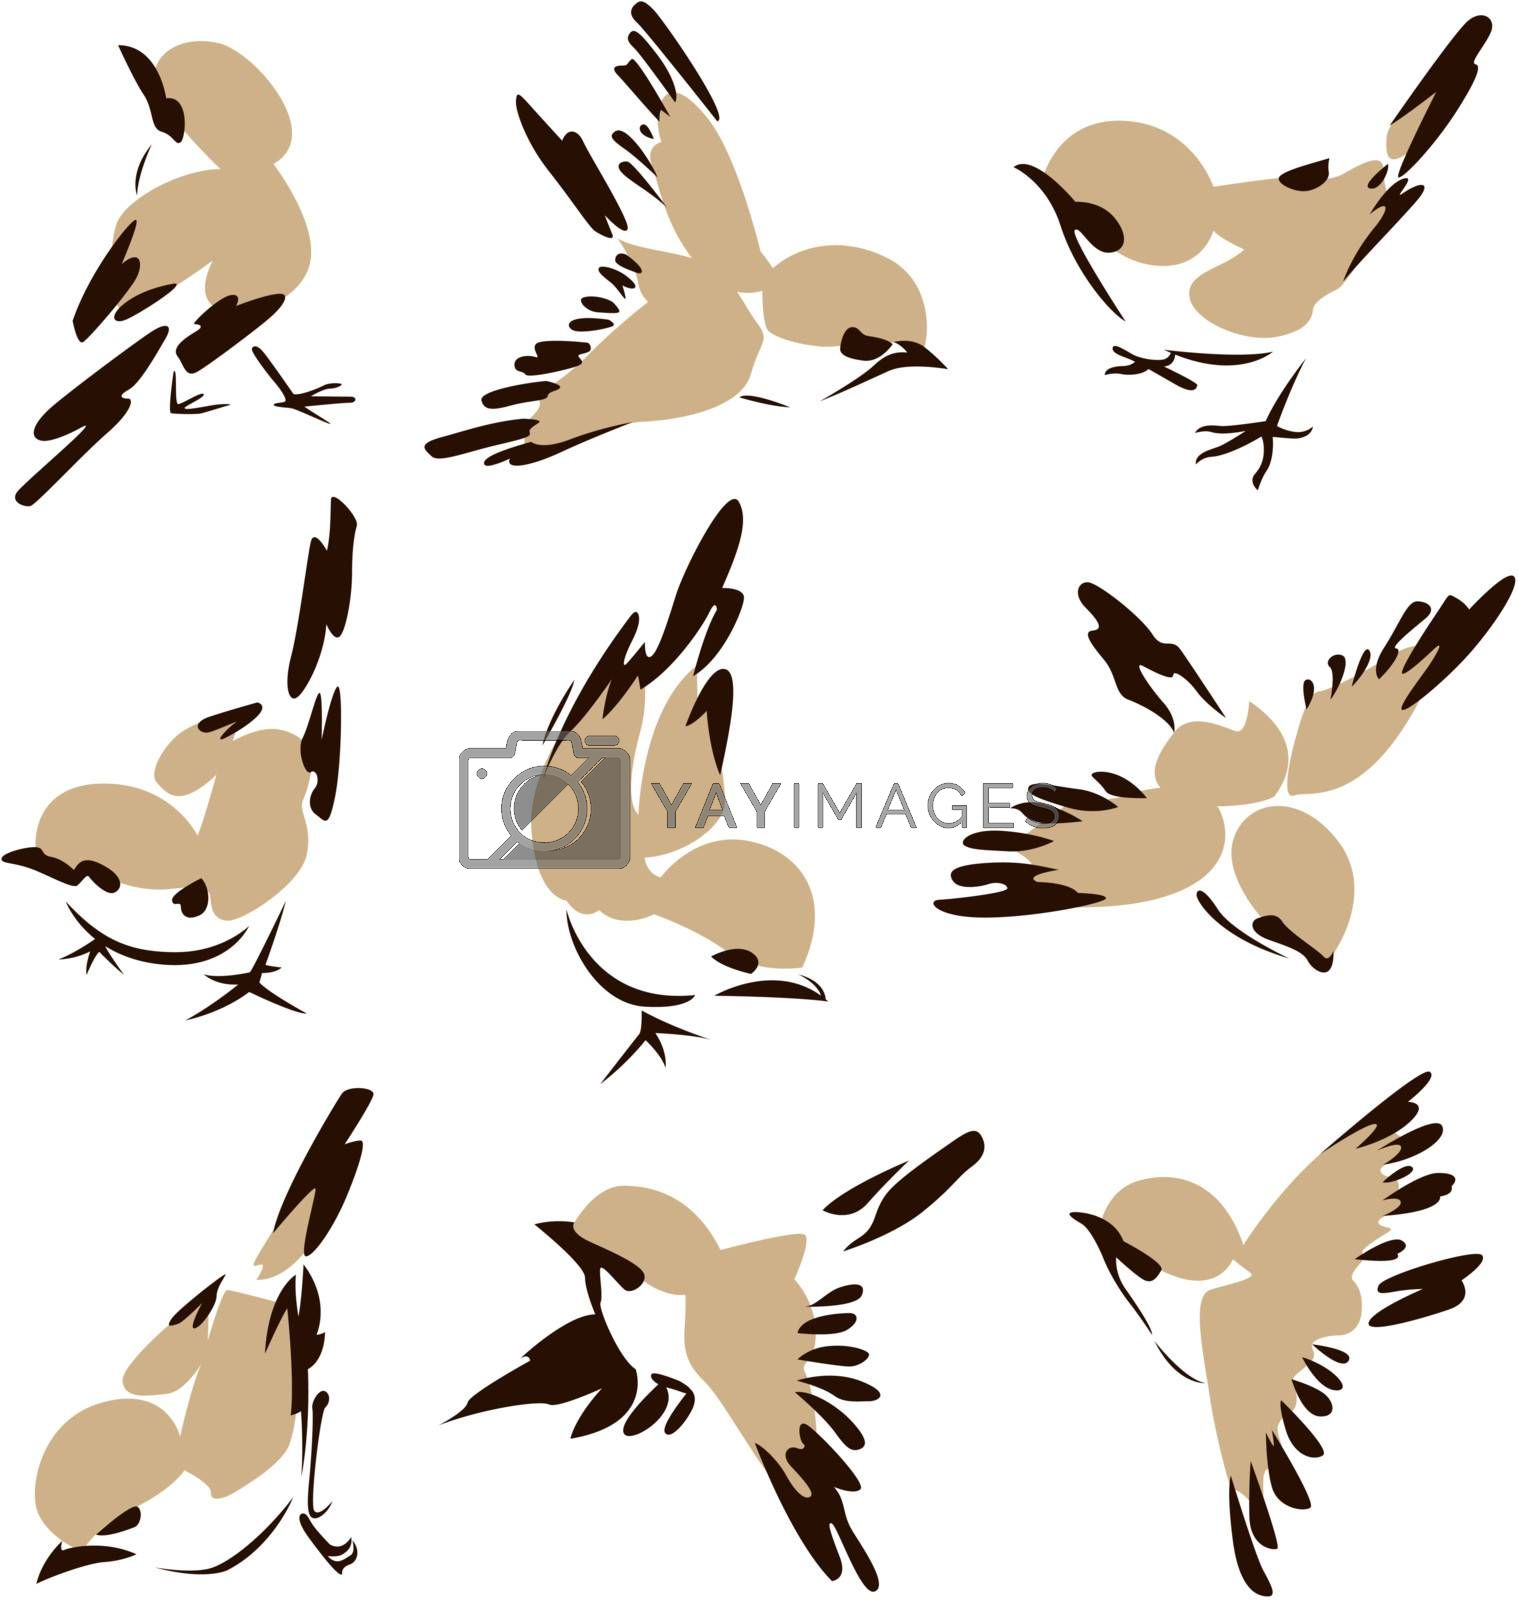 Stylish Flying Bird Painting Drawing Set Royalty Free Stock Image Stock Photos Royalty Free Images Vectors Footage Yayimages